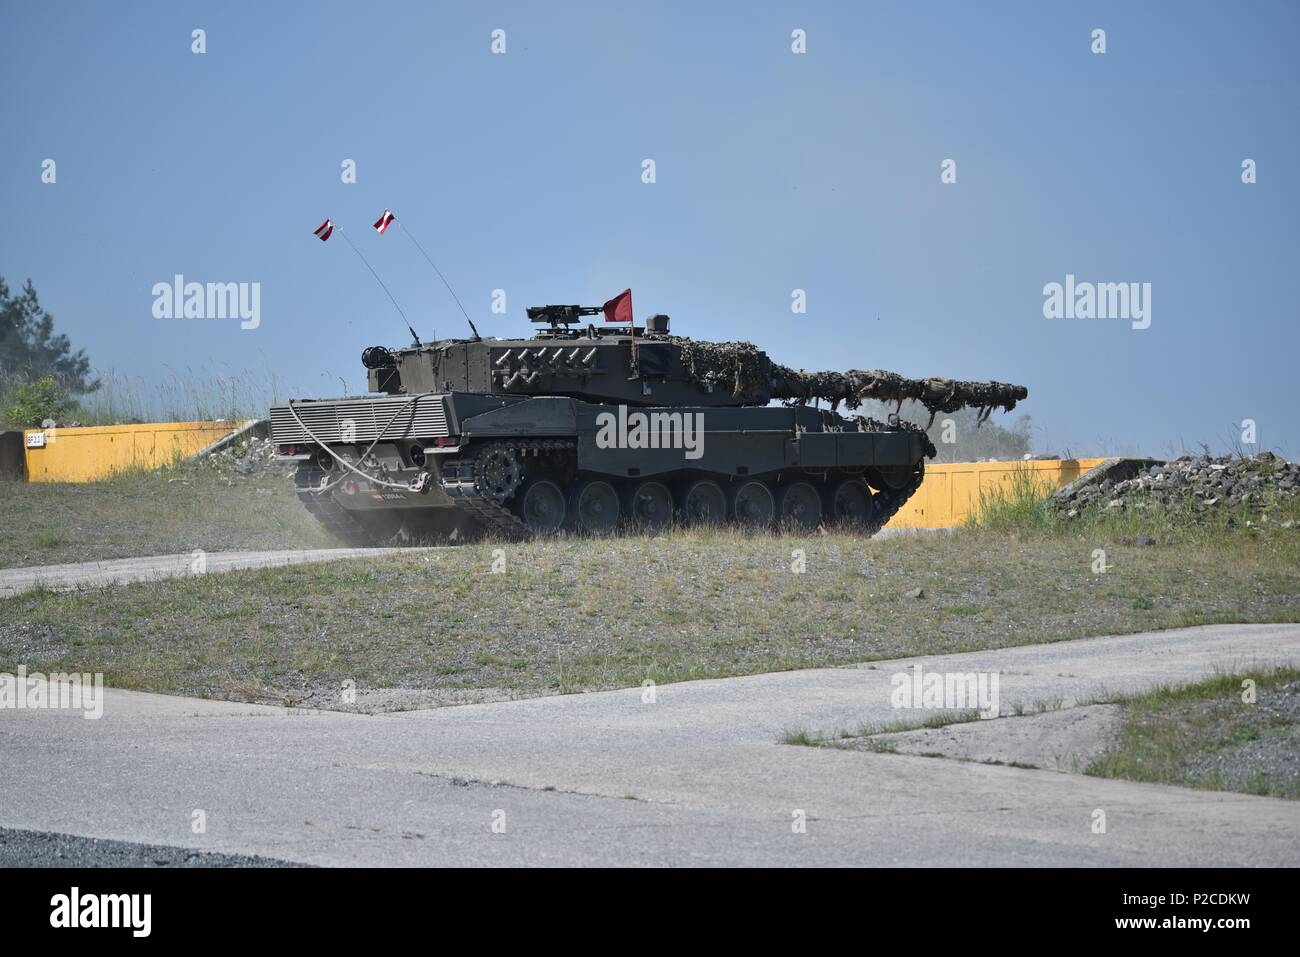 An Austrian Leopard 2A4 tank, operated by Austrian soldiers assigned to 6th Tank Company, 14th Panzer Battalion, fires at its target during the Strong Europe Tank Challenge (SETC), at the 7th Army Training Command's Grafenwoehr Training Area, Grafenwoehr, Germany, June 04, 2018, June 4, 2018. U.S. Army Europe and the German Army co-host the third Strong Europe Tank Challenge at Grafenwoehr Training Area, June 3 - 8, 2018. The Strong Europe Tank Challenge is an annual training event designed to give participating nations a dynamic, productive and fun environment in which to foster military part - Stock Image